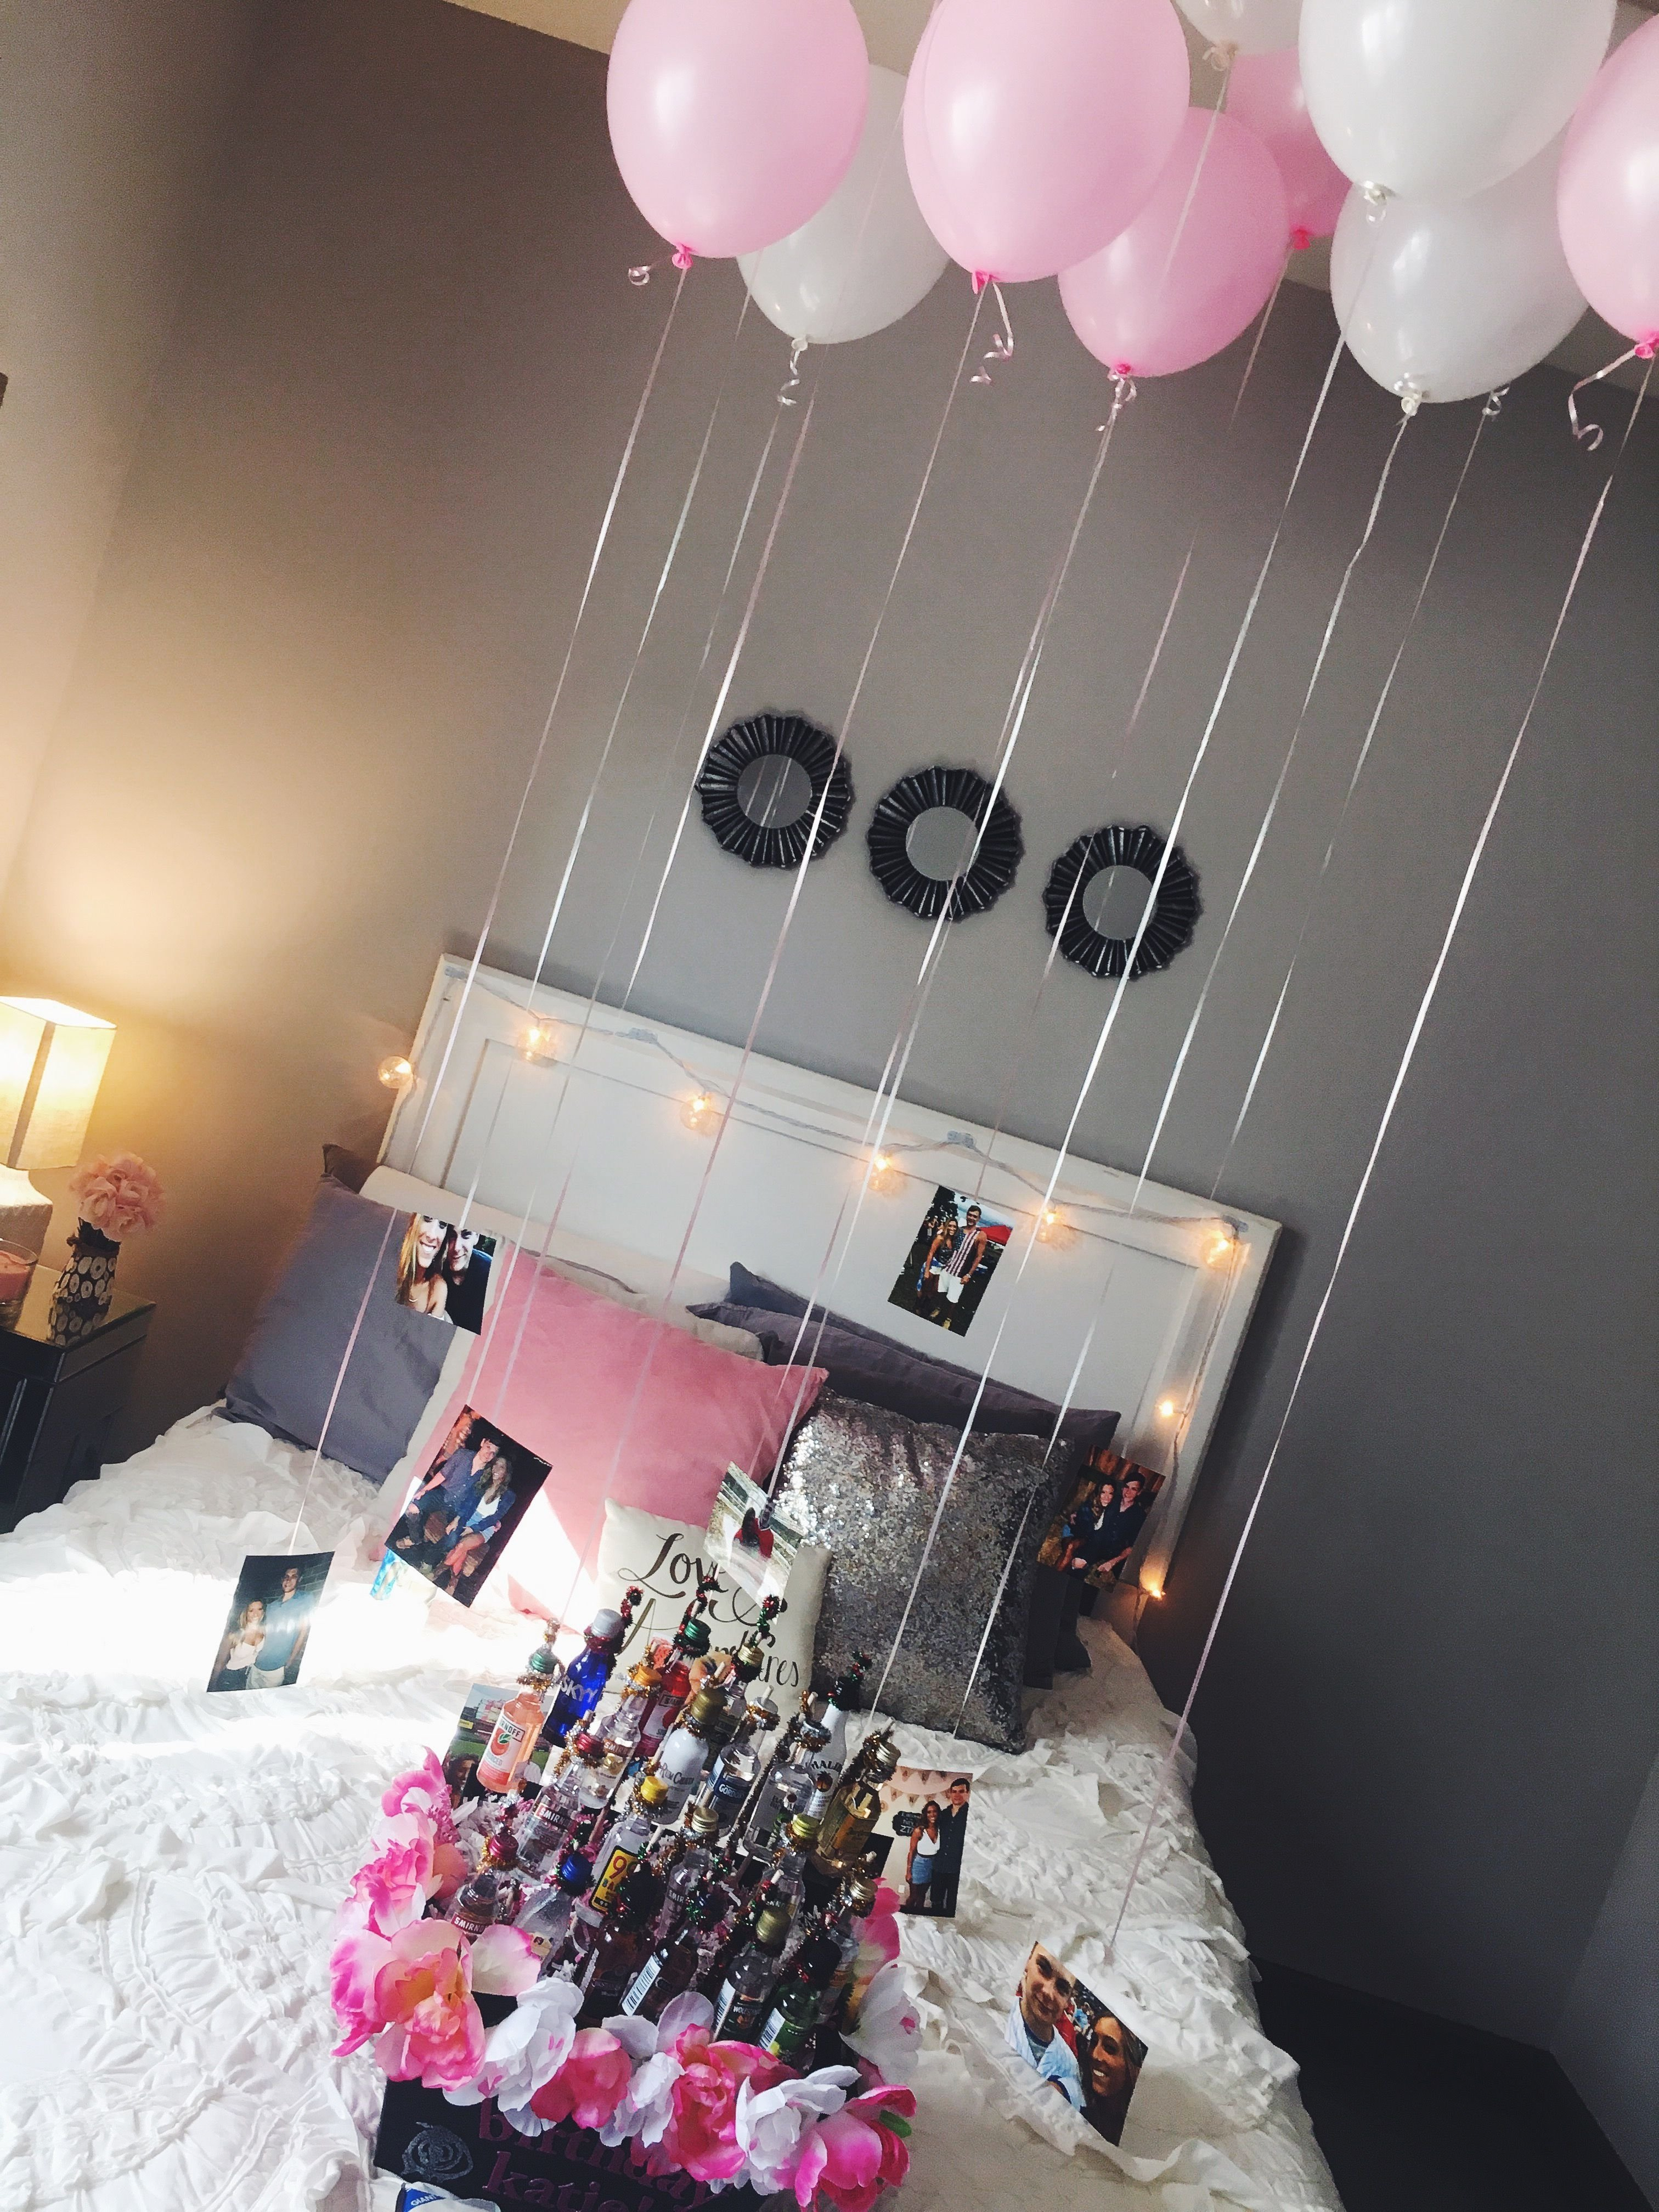 10 Awesome Fun Birthday Ideas For Girlfriend easy and cute decorations for a friend or girlfriends 21st birthday 2 2020